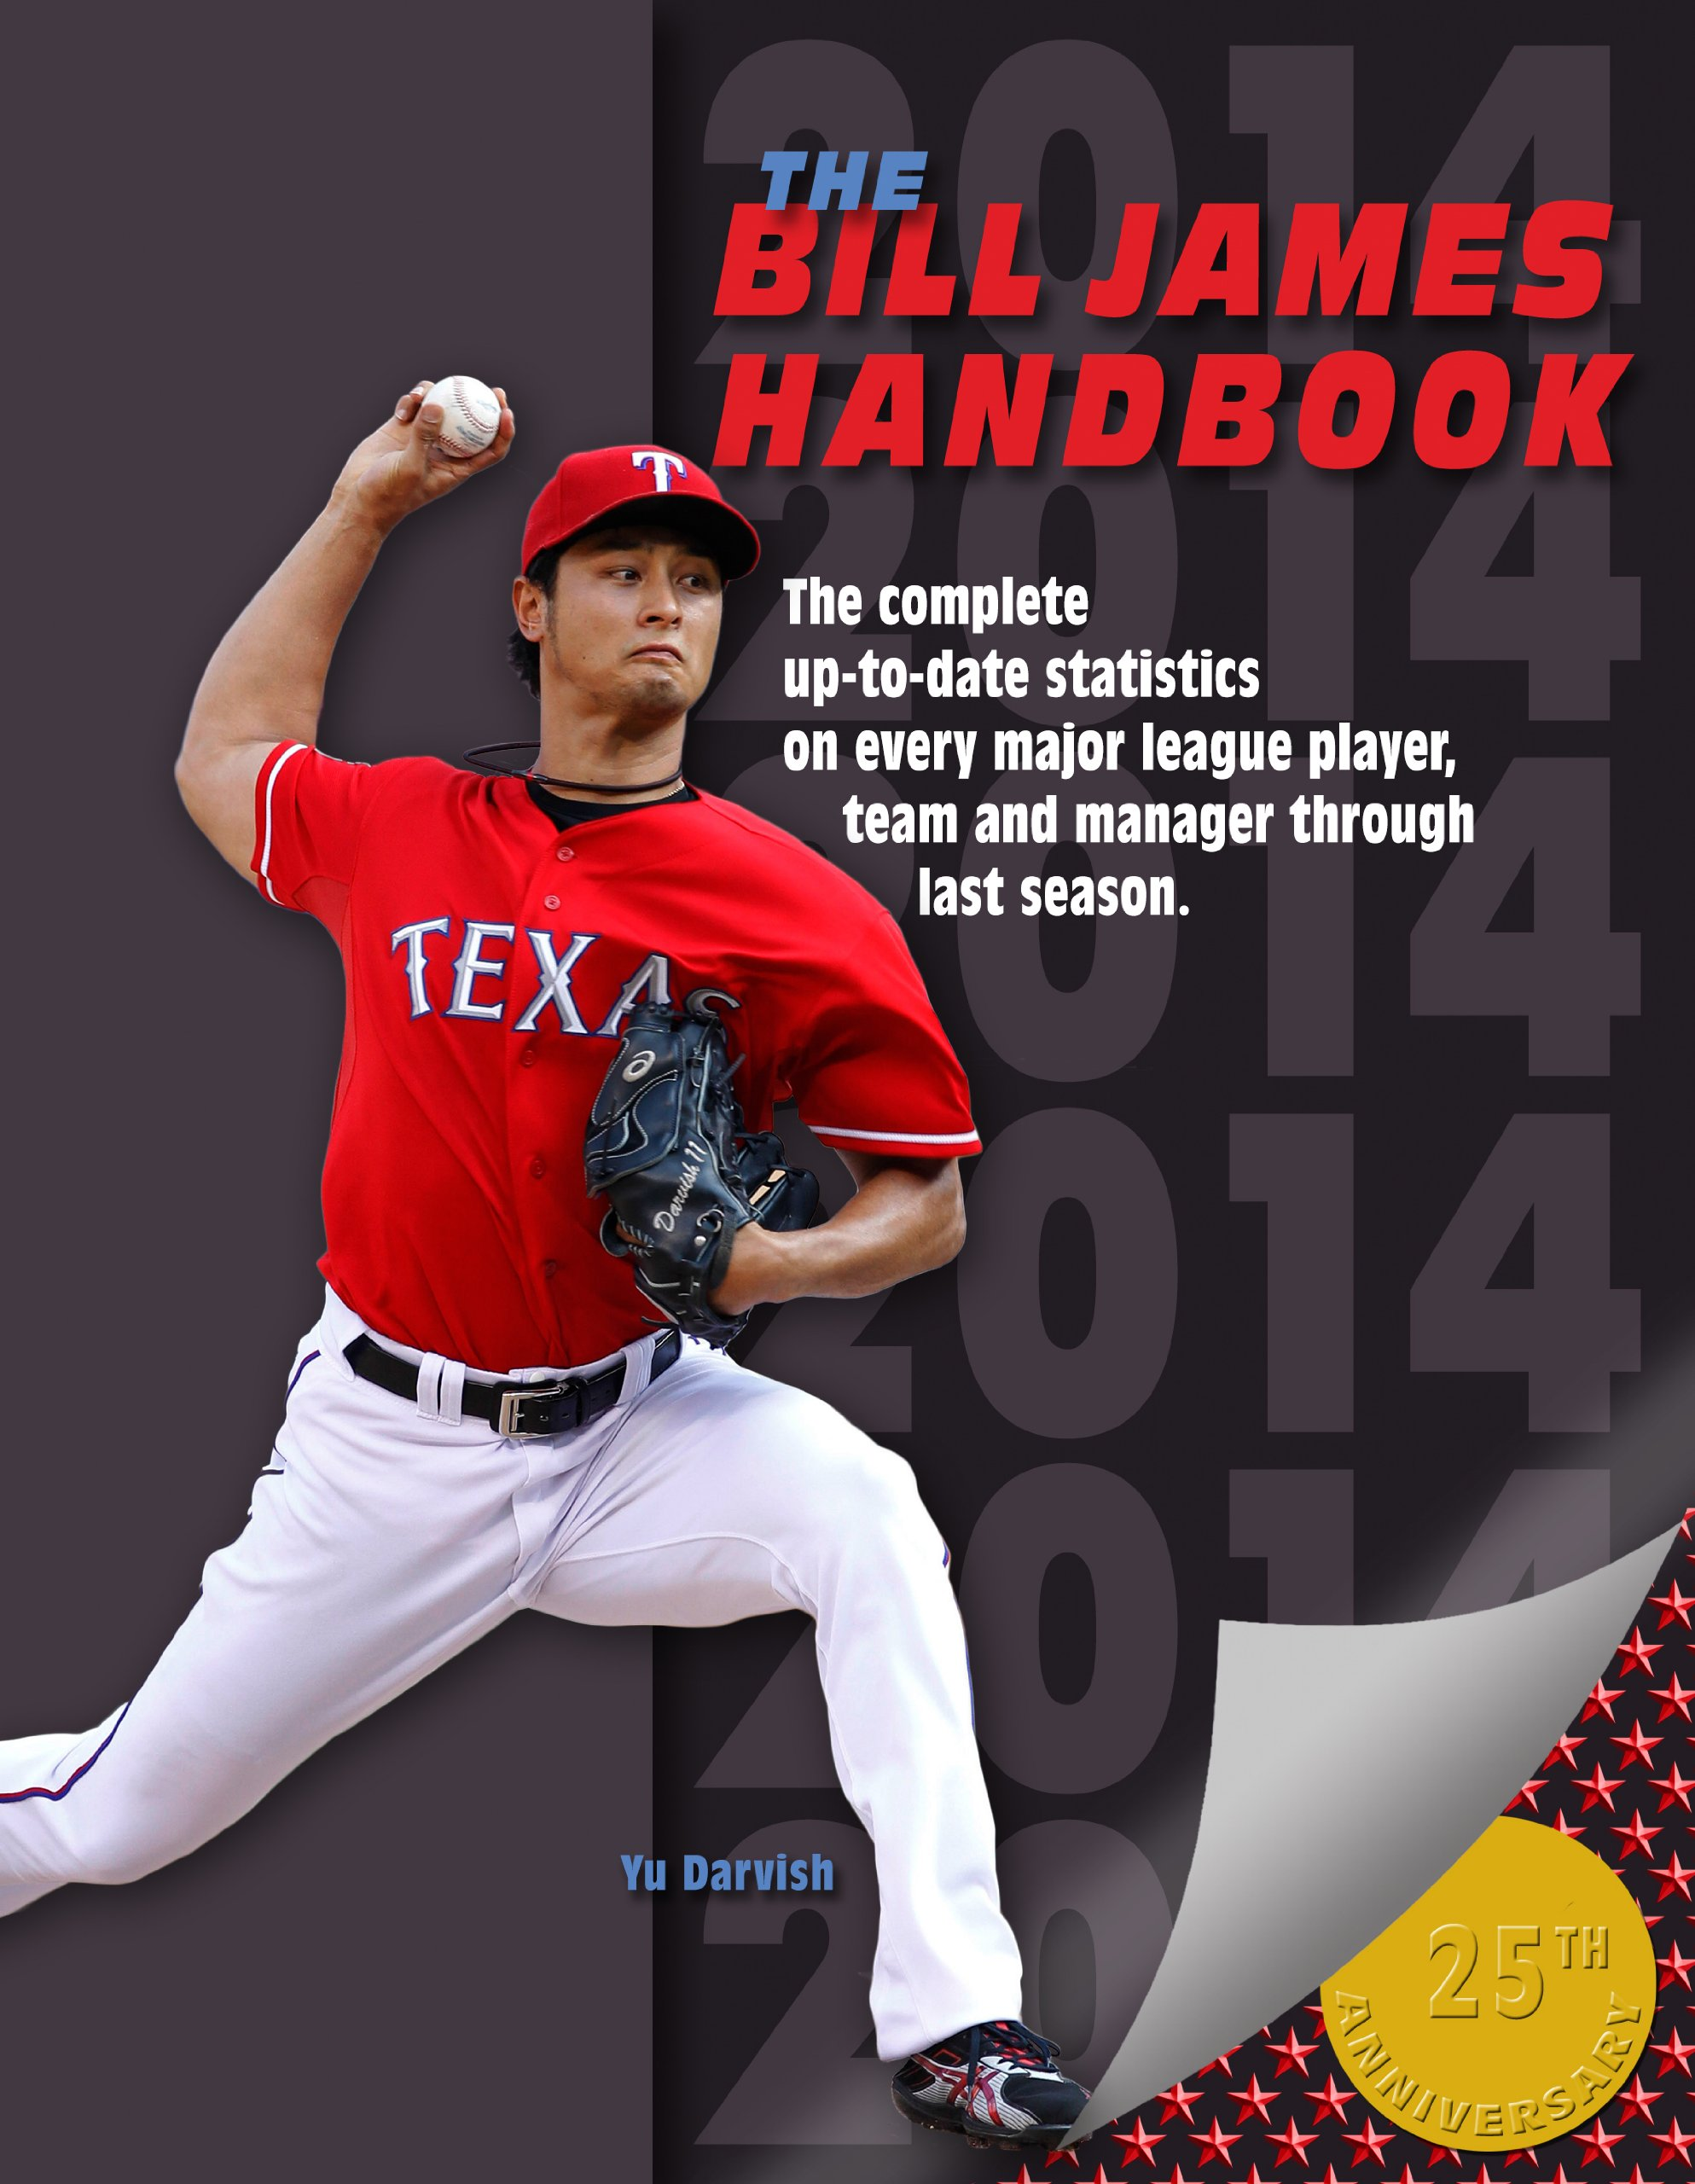 the bill james handbook